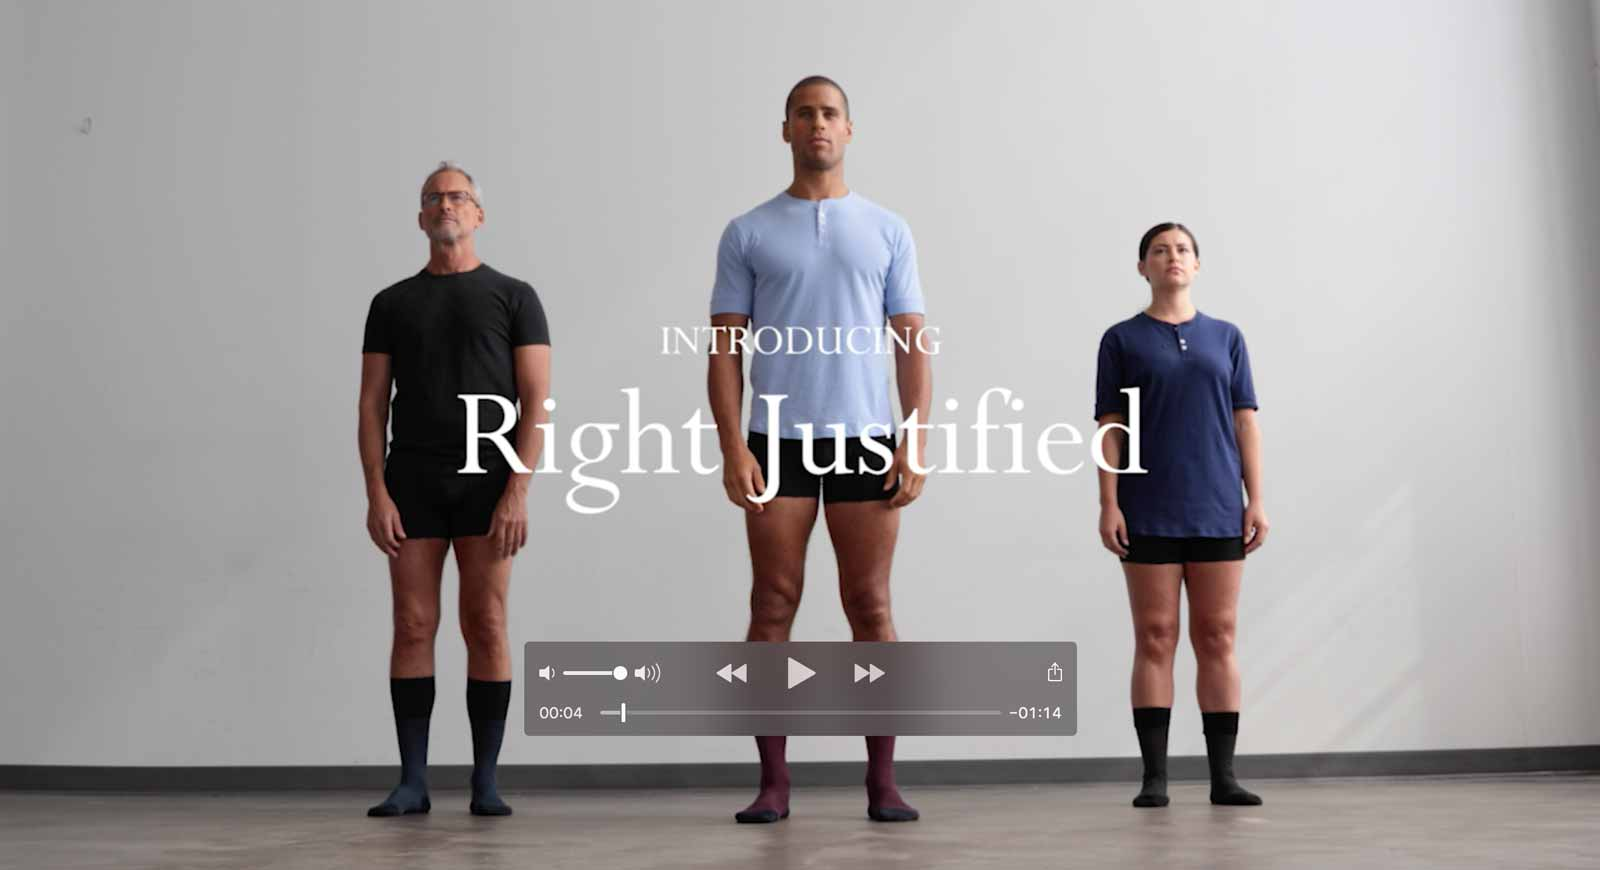 Right Justified Video